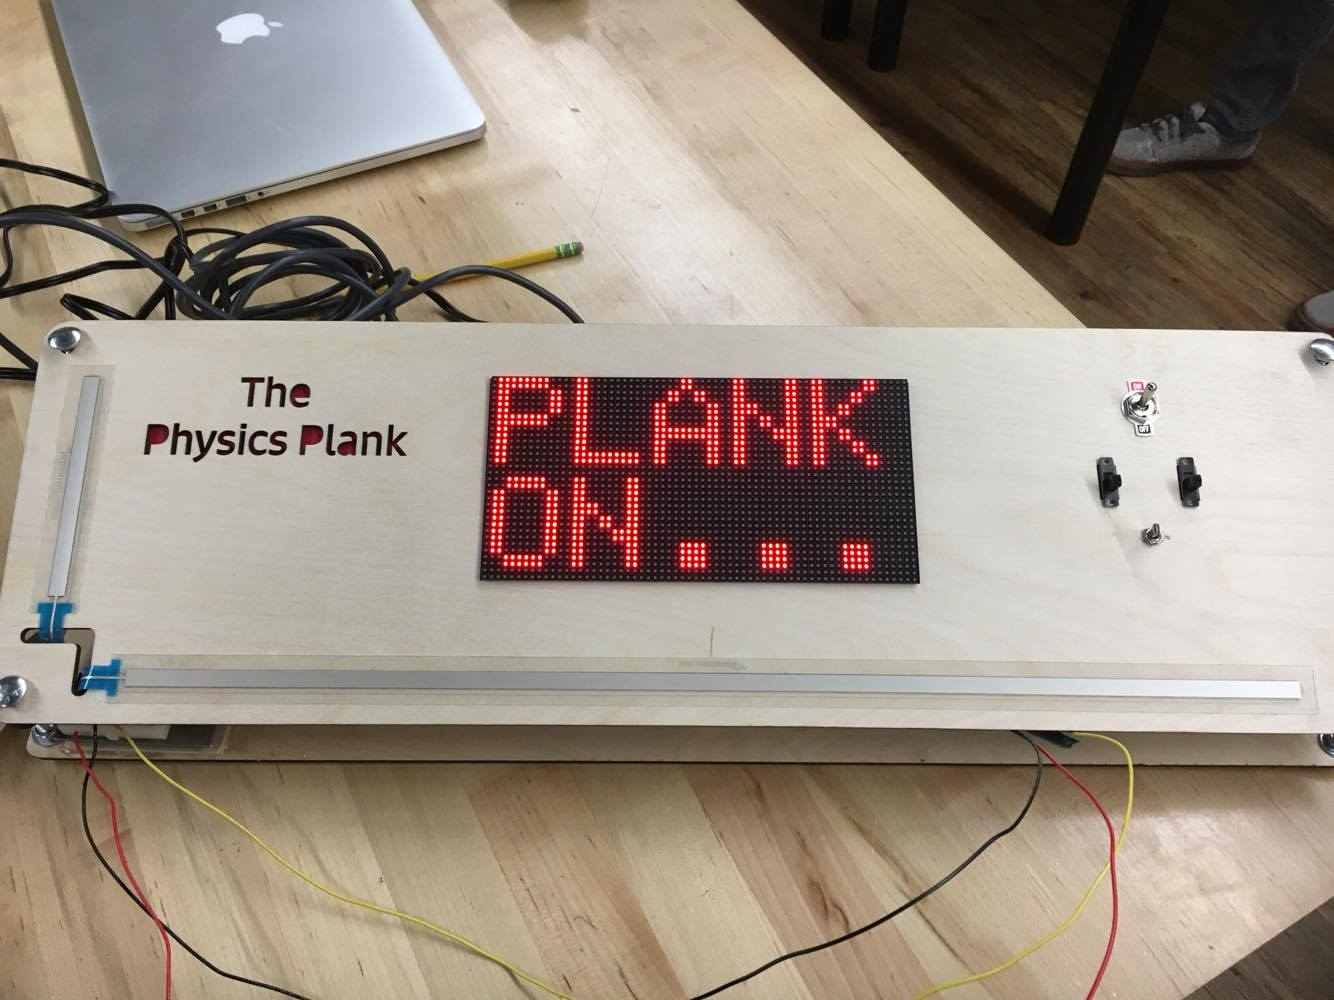 The Physics Plank